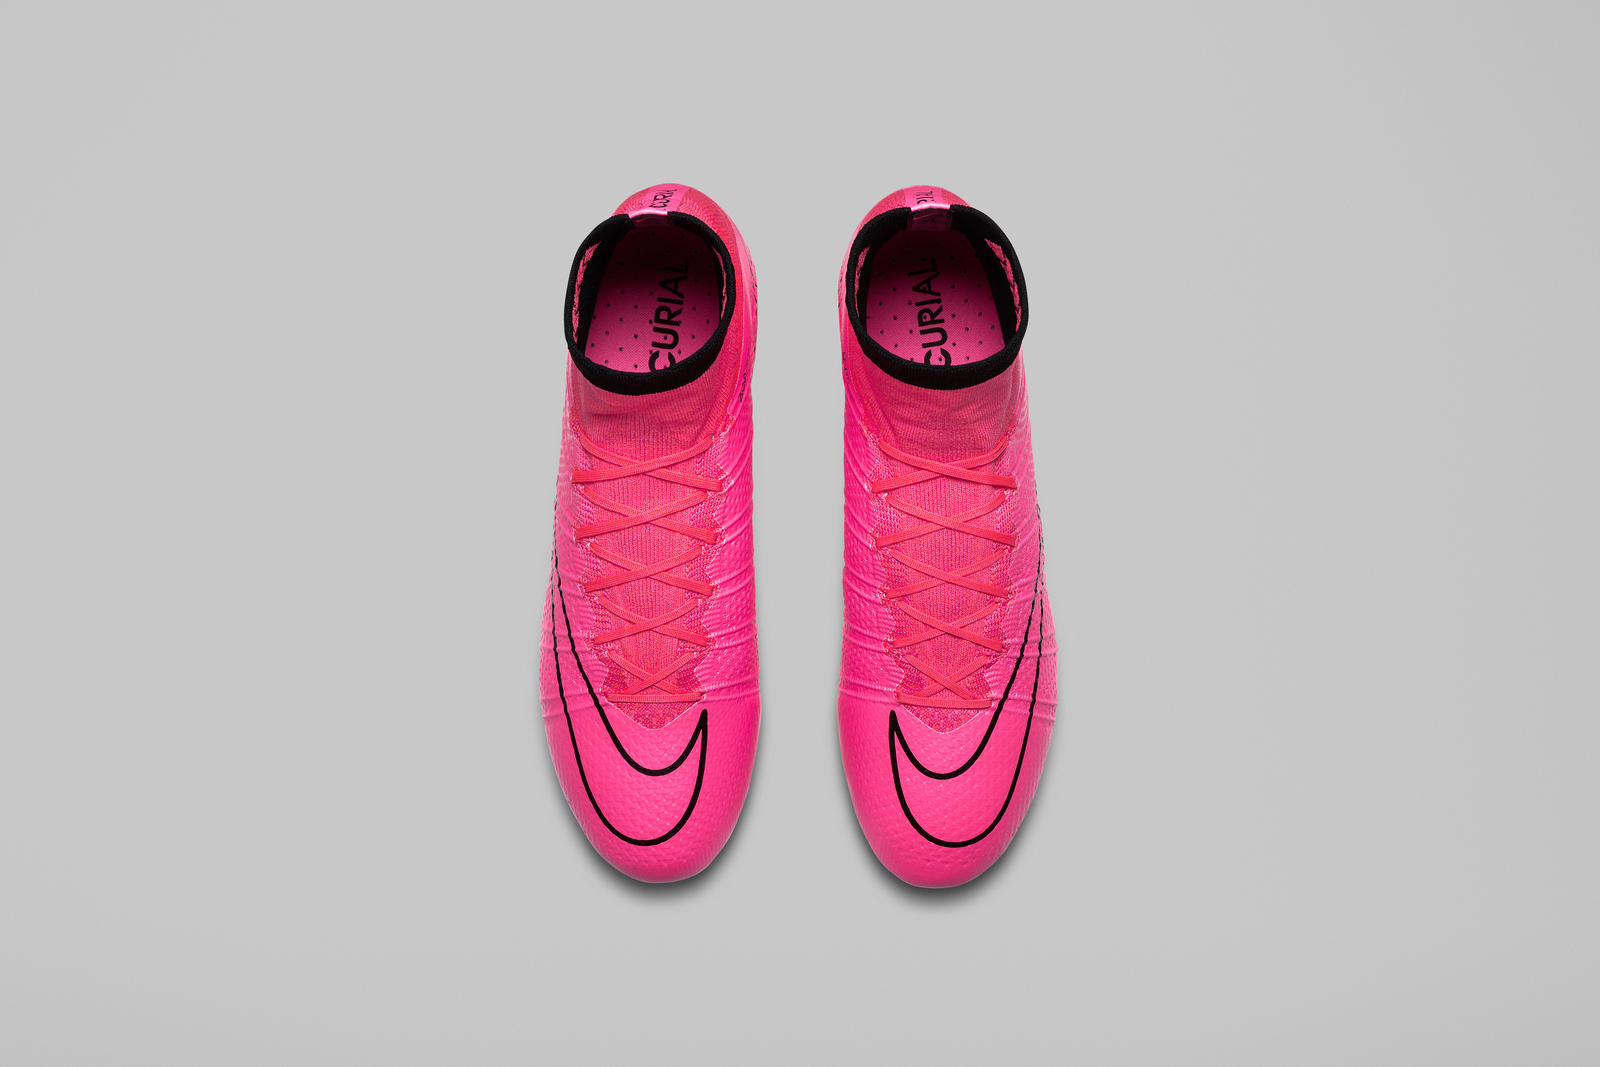 FA15_FB_FG_MercurialSuperfly_TopDown_Pink_native_1600